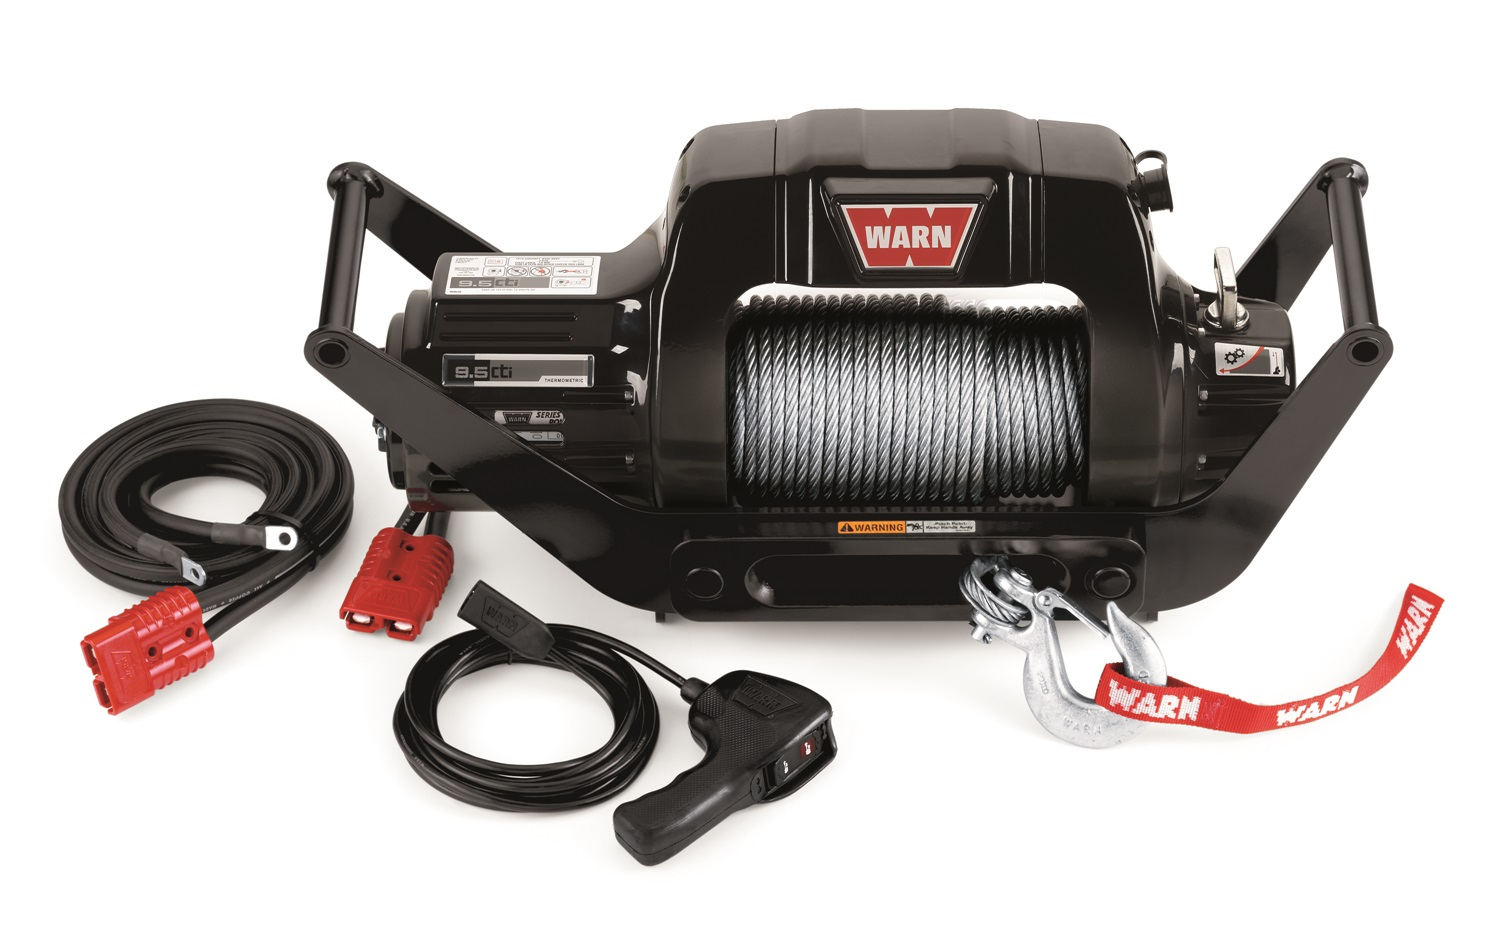 Warn 90340 ZEON 10; Multi-Mount Winch Kit at Sears.com